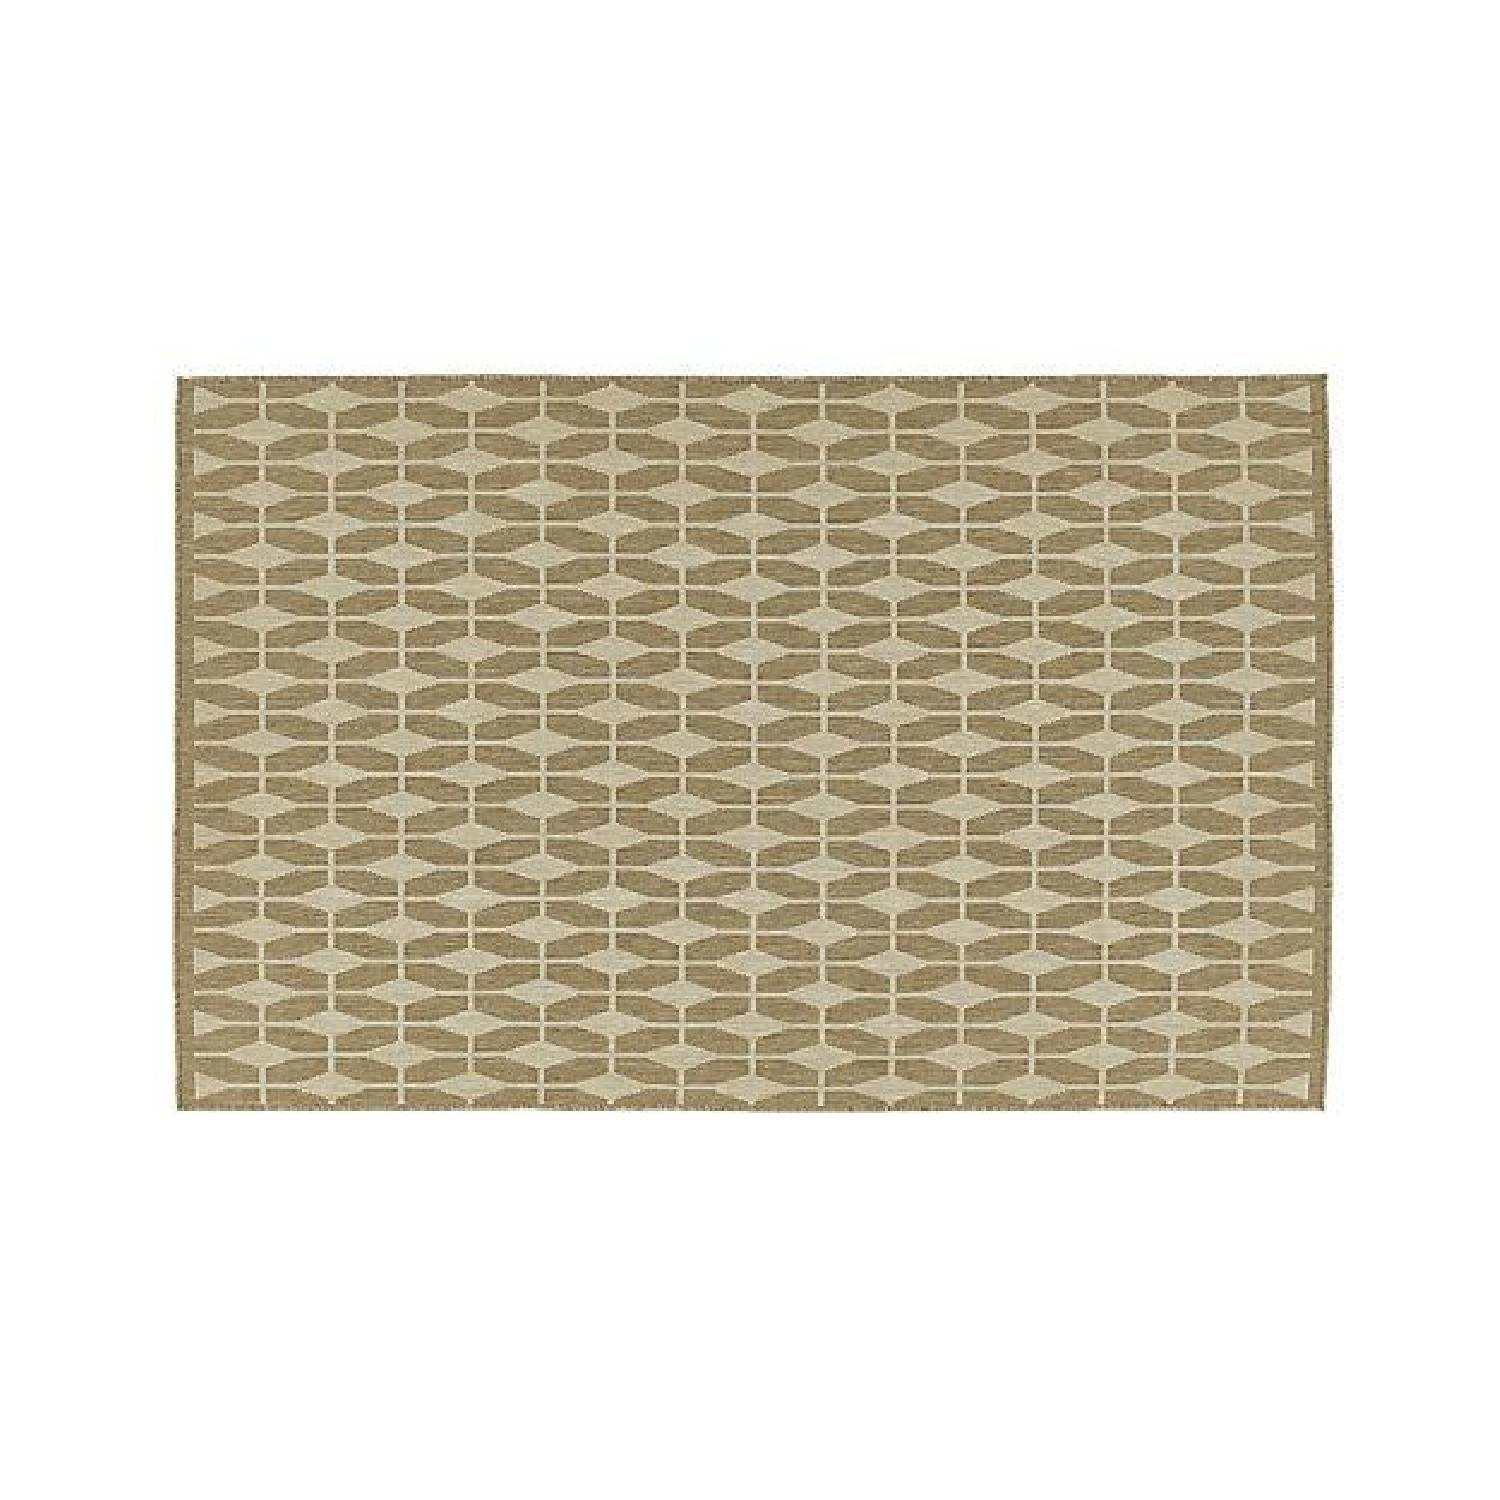 Crate & Barrel Aldo II Rug in Flax - image-0